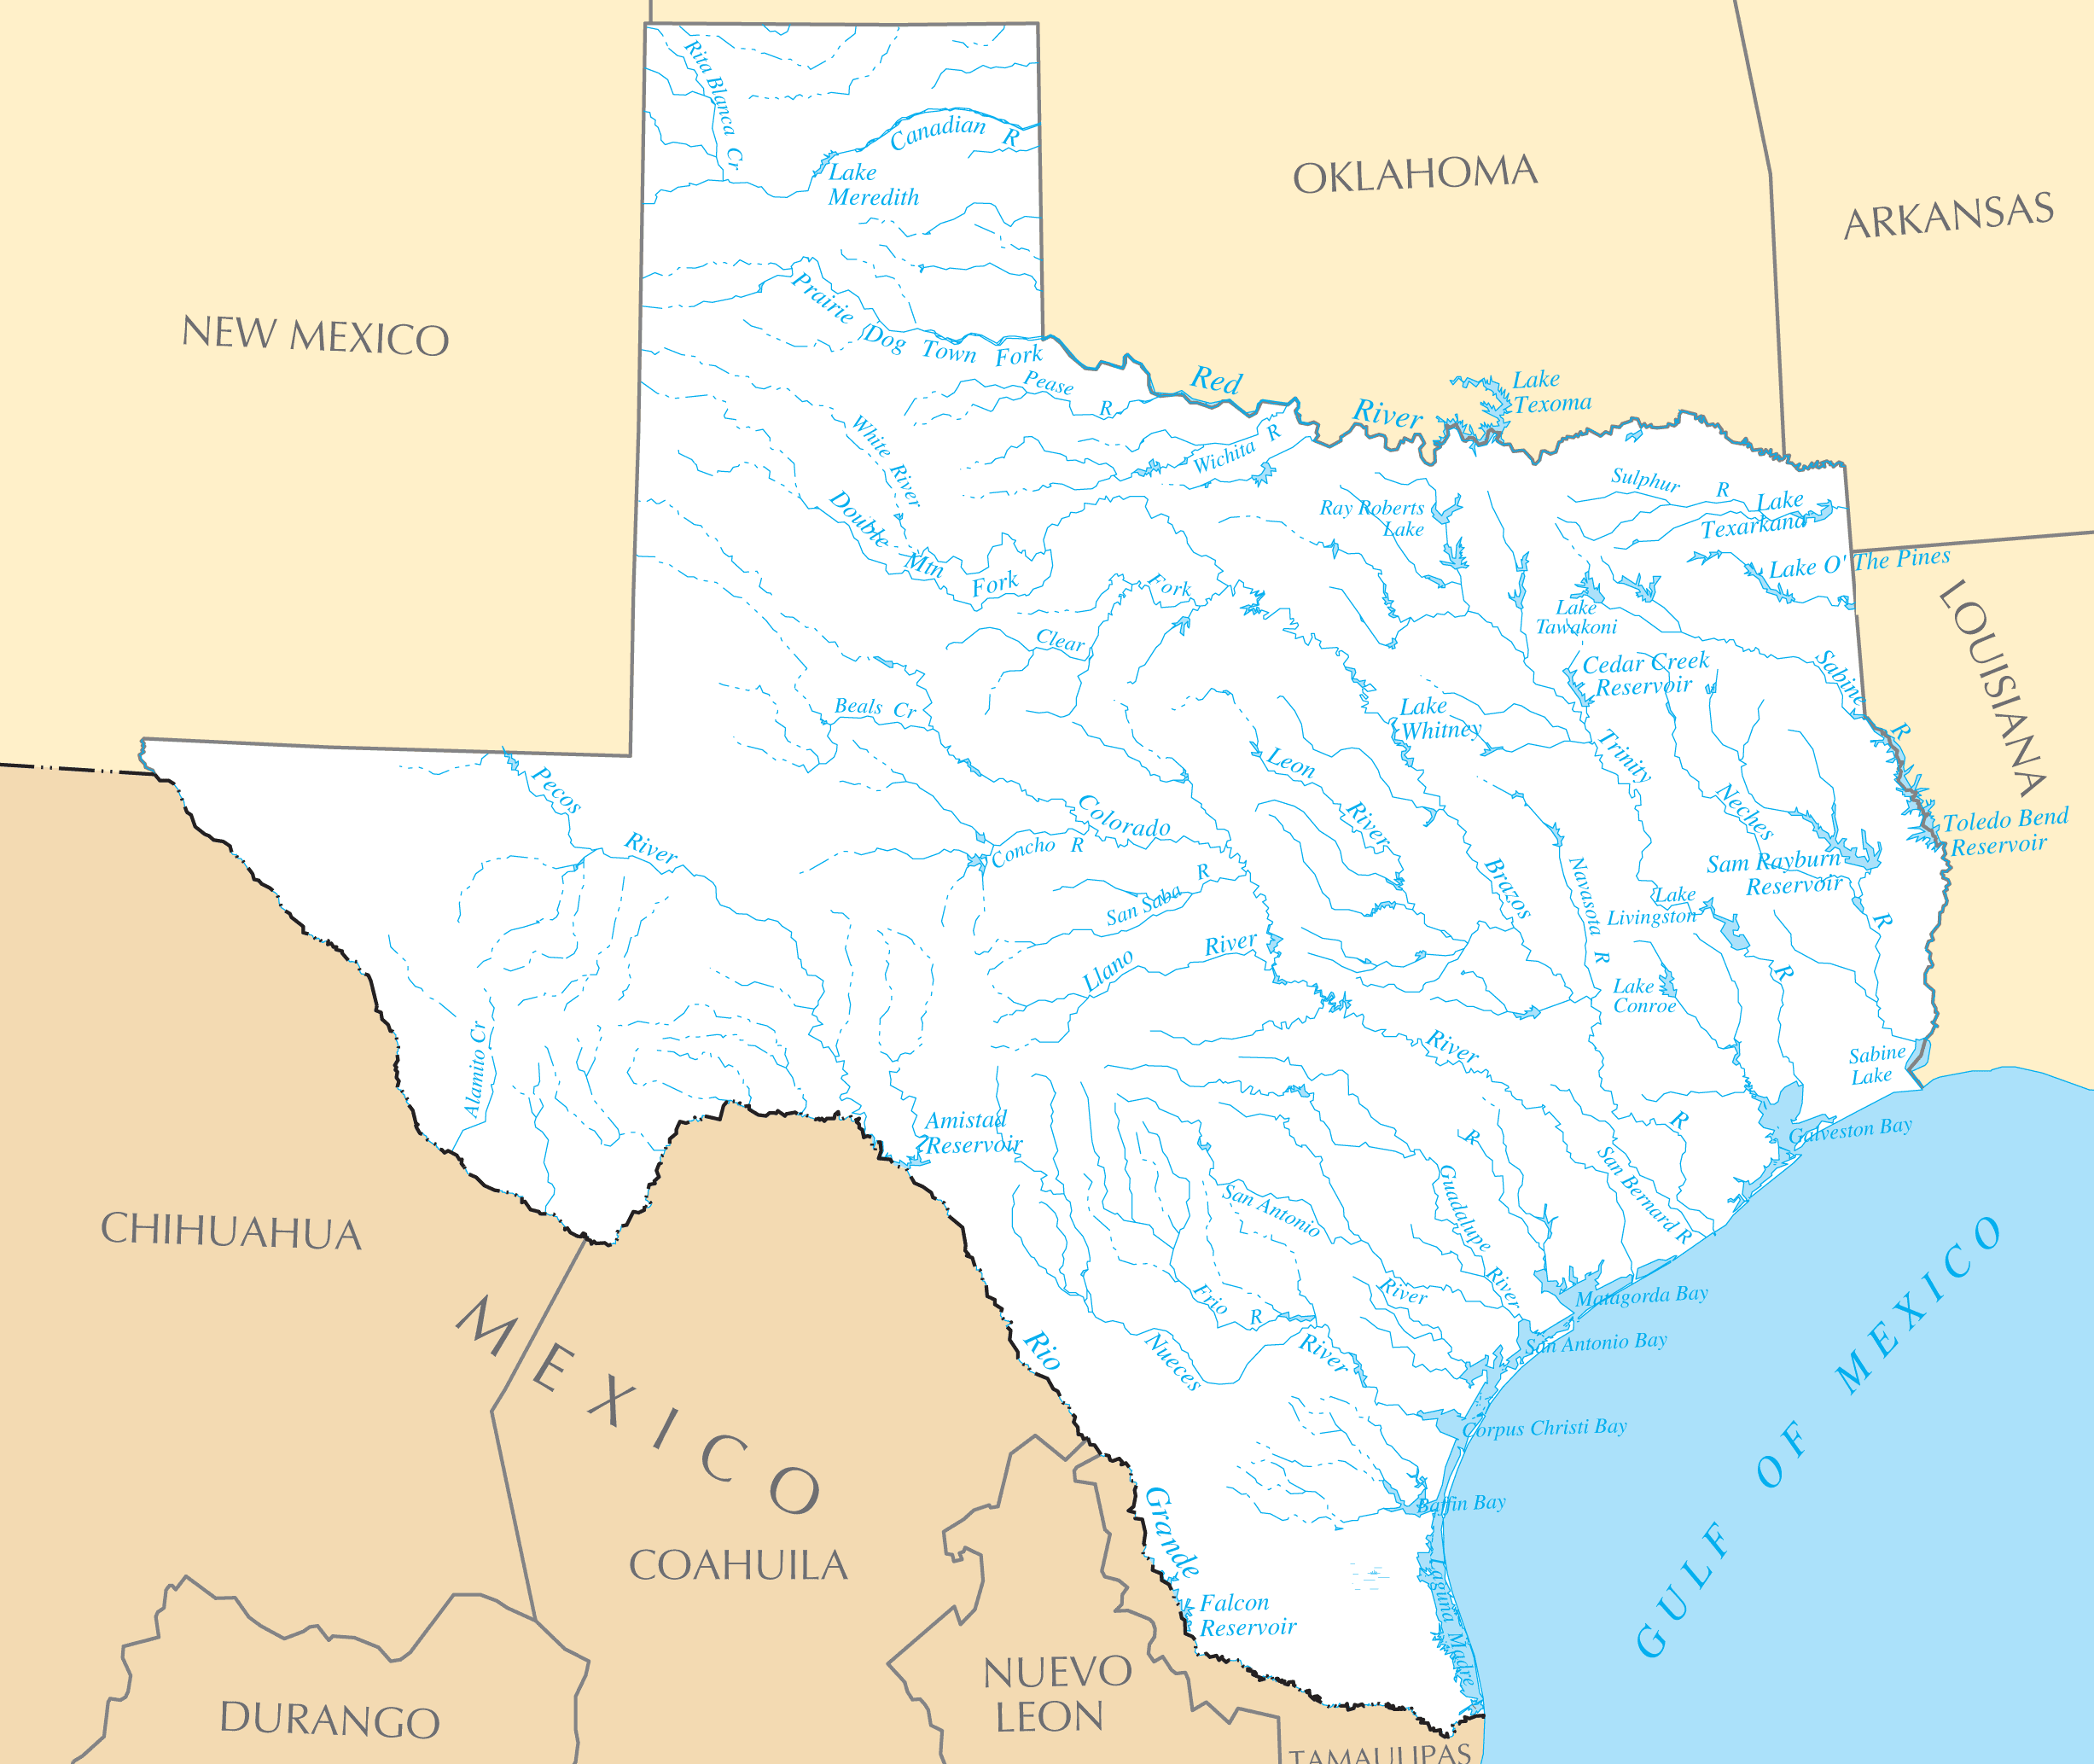 Texas Rivers And Lakes large map